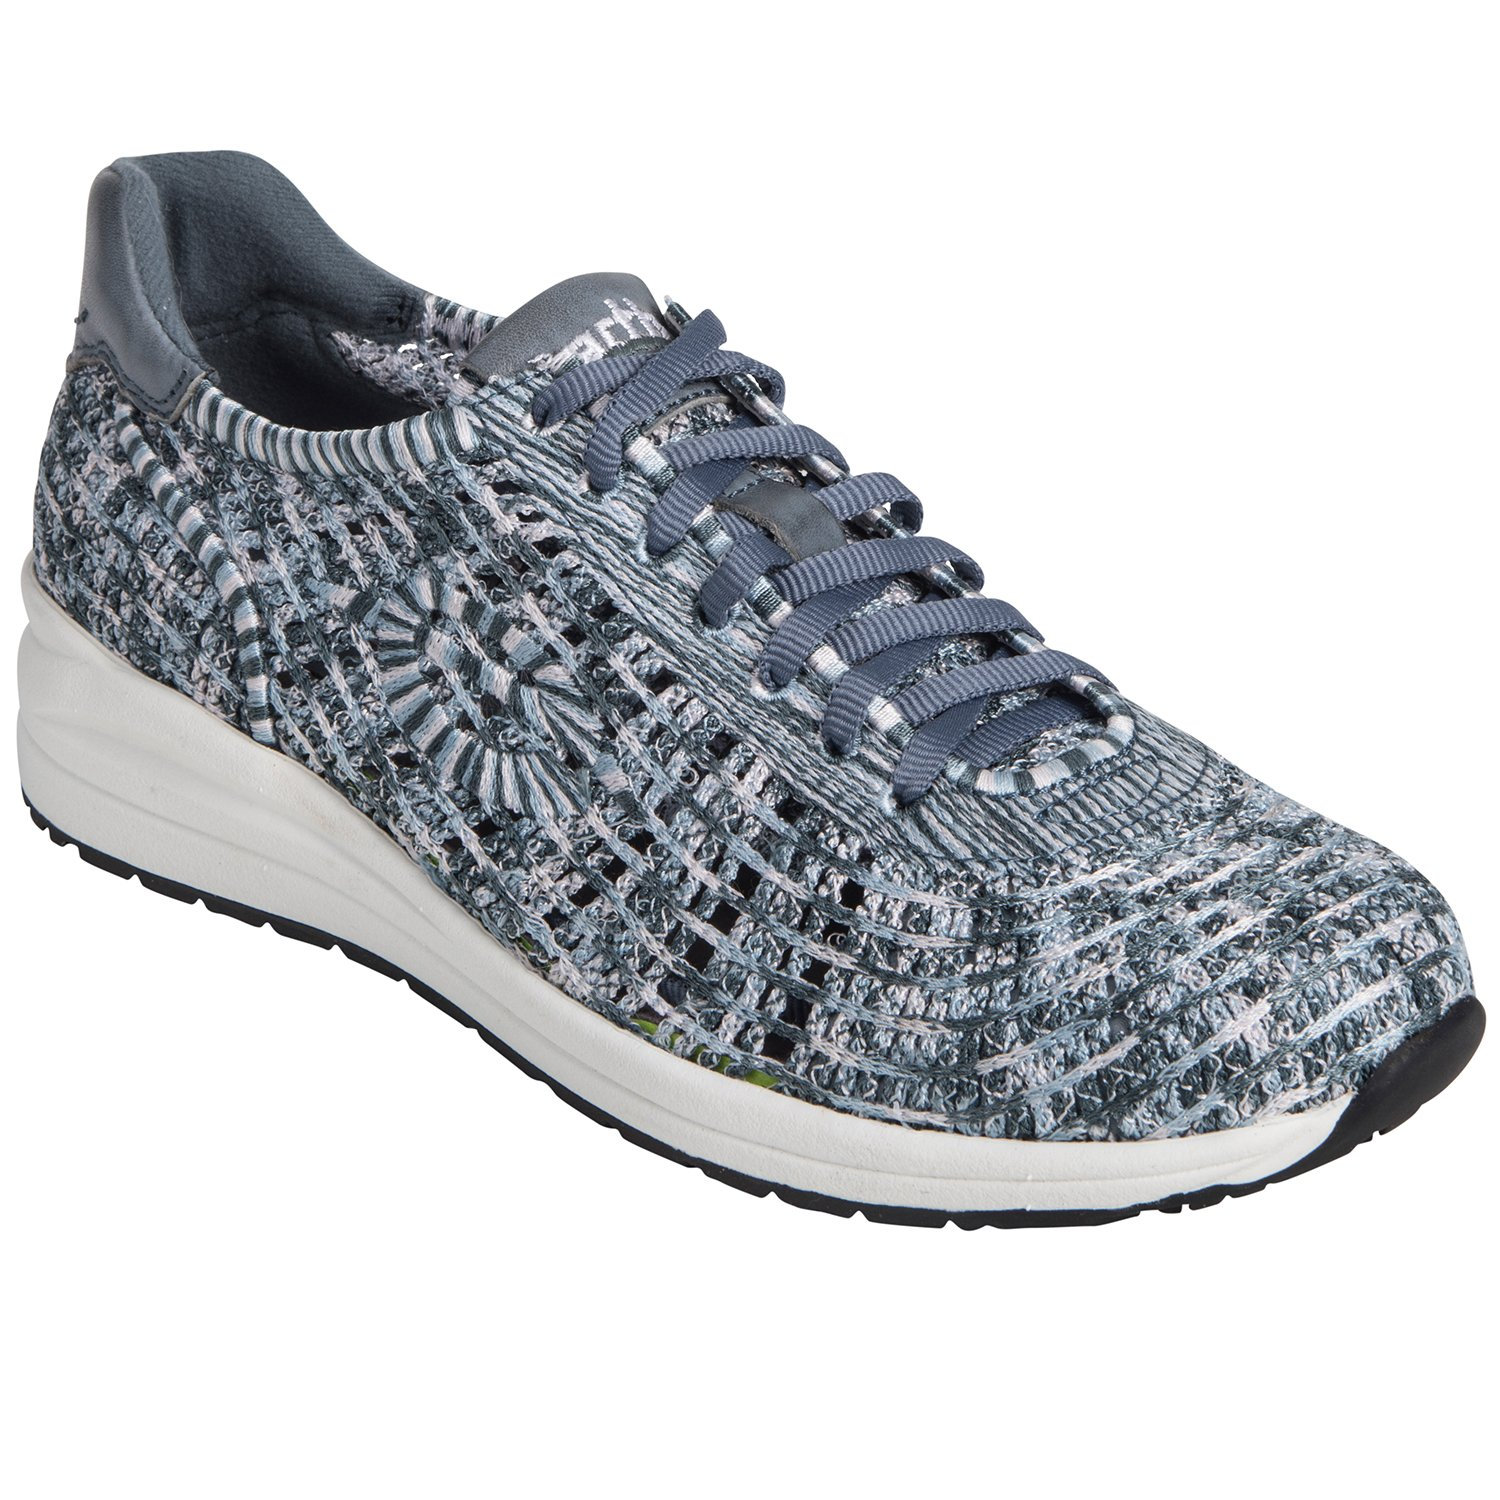 Earth Shoes Vital B075ZYHFQK 5.5 B(M) US|Dusty Blue